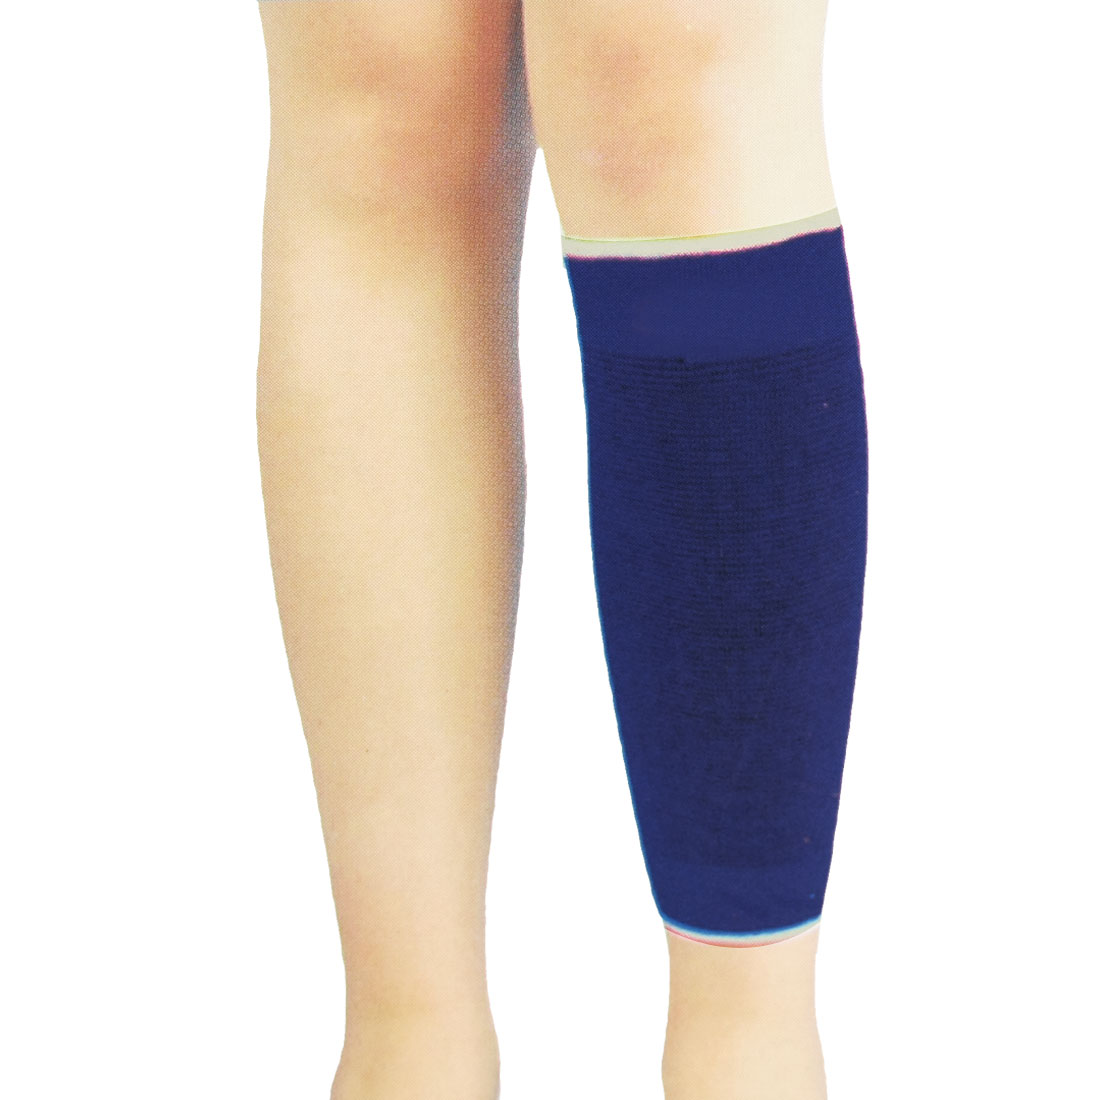 Pair Sports Protecting Striped Elastic Shin Calf Support Sleeve Blue Black